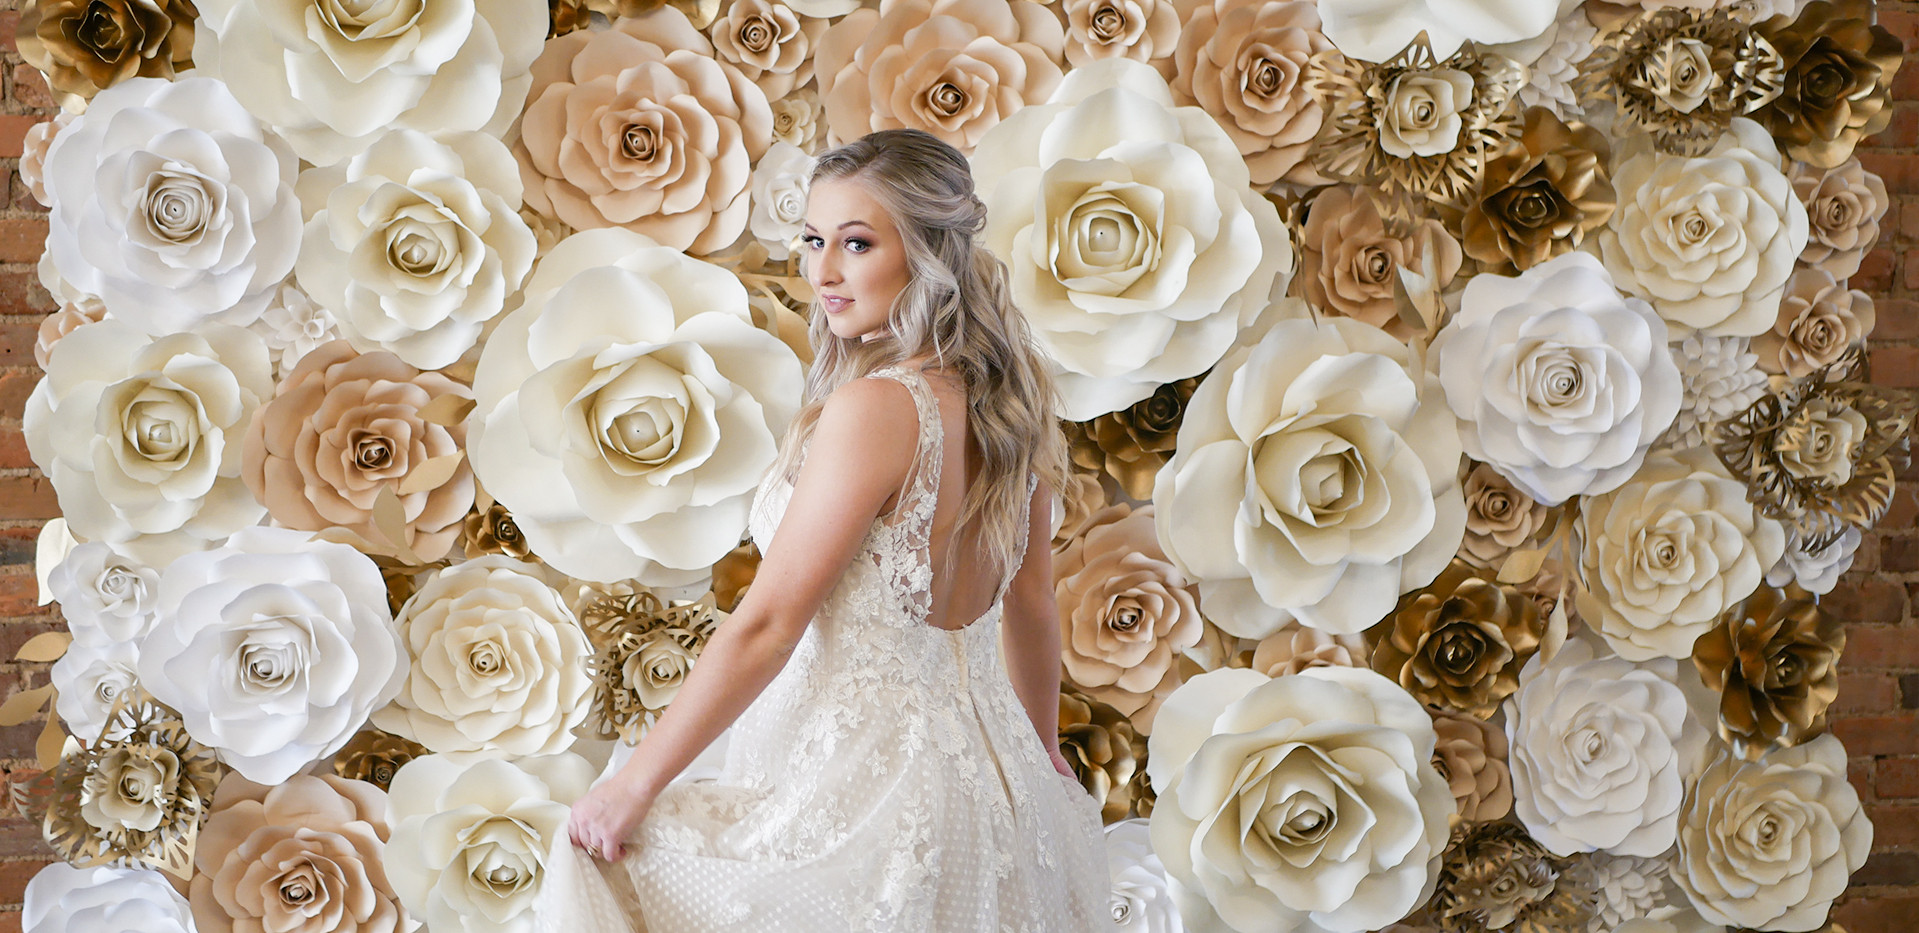 Styled shoot portrait49.jpg